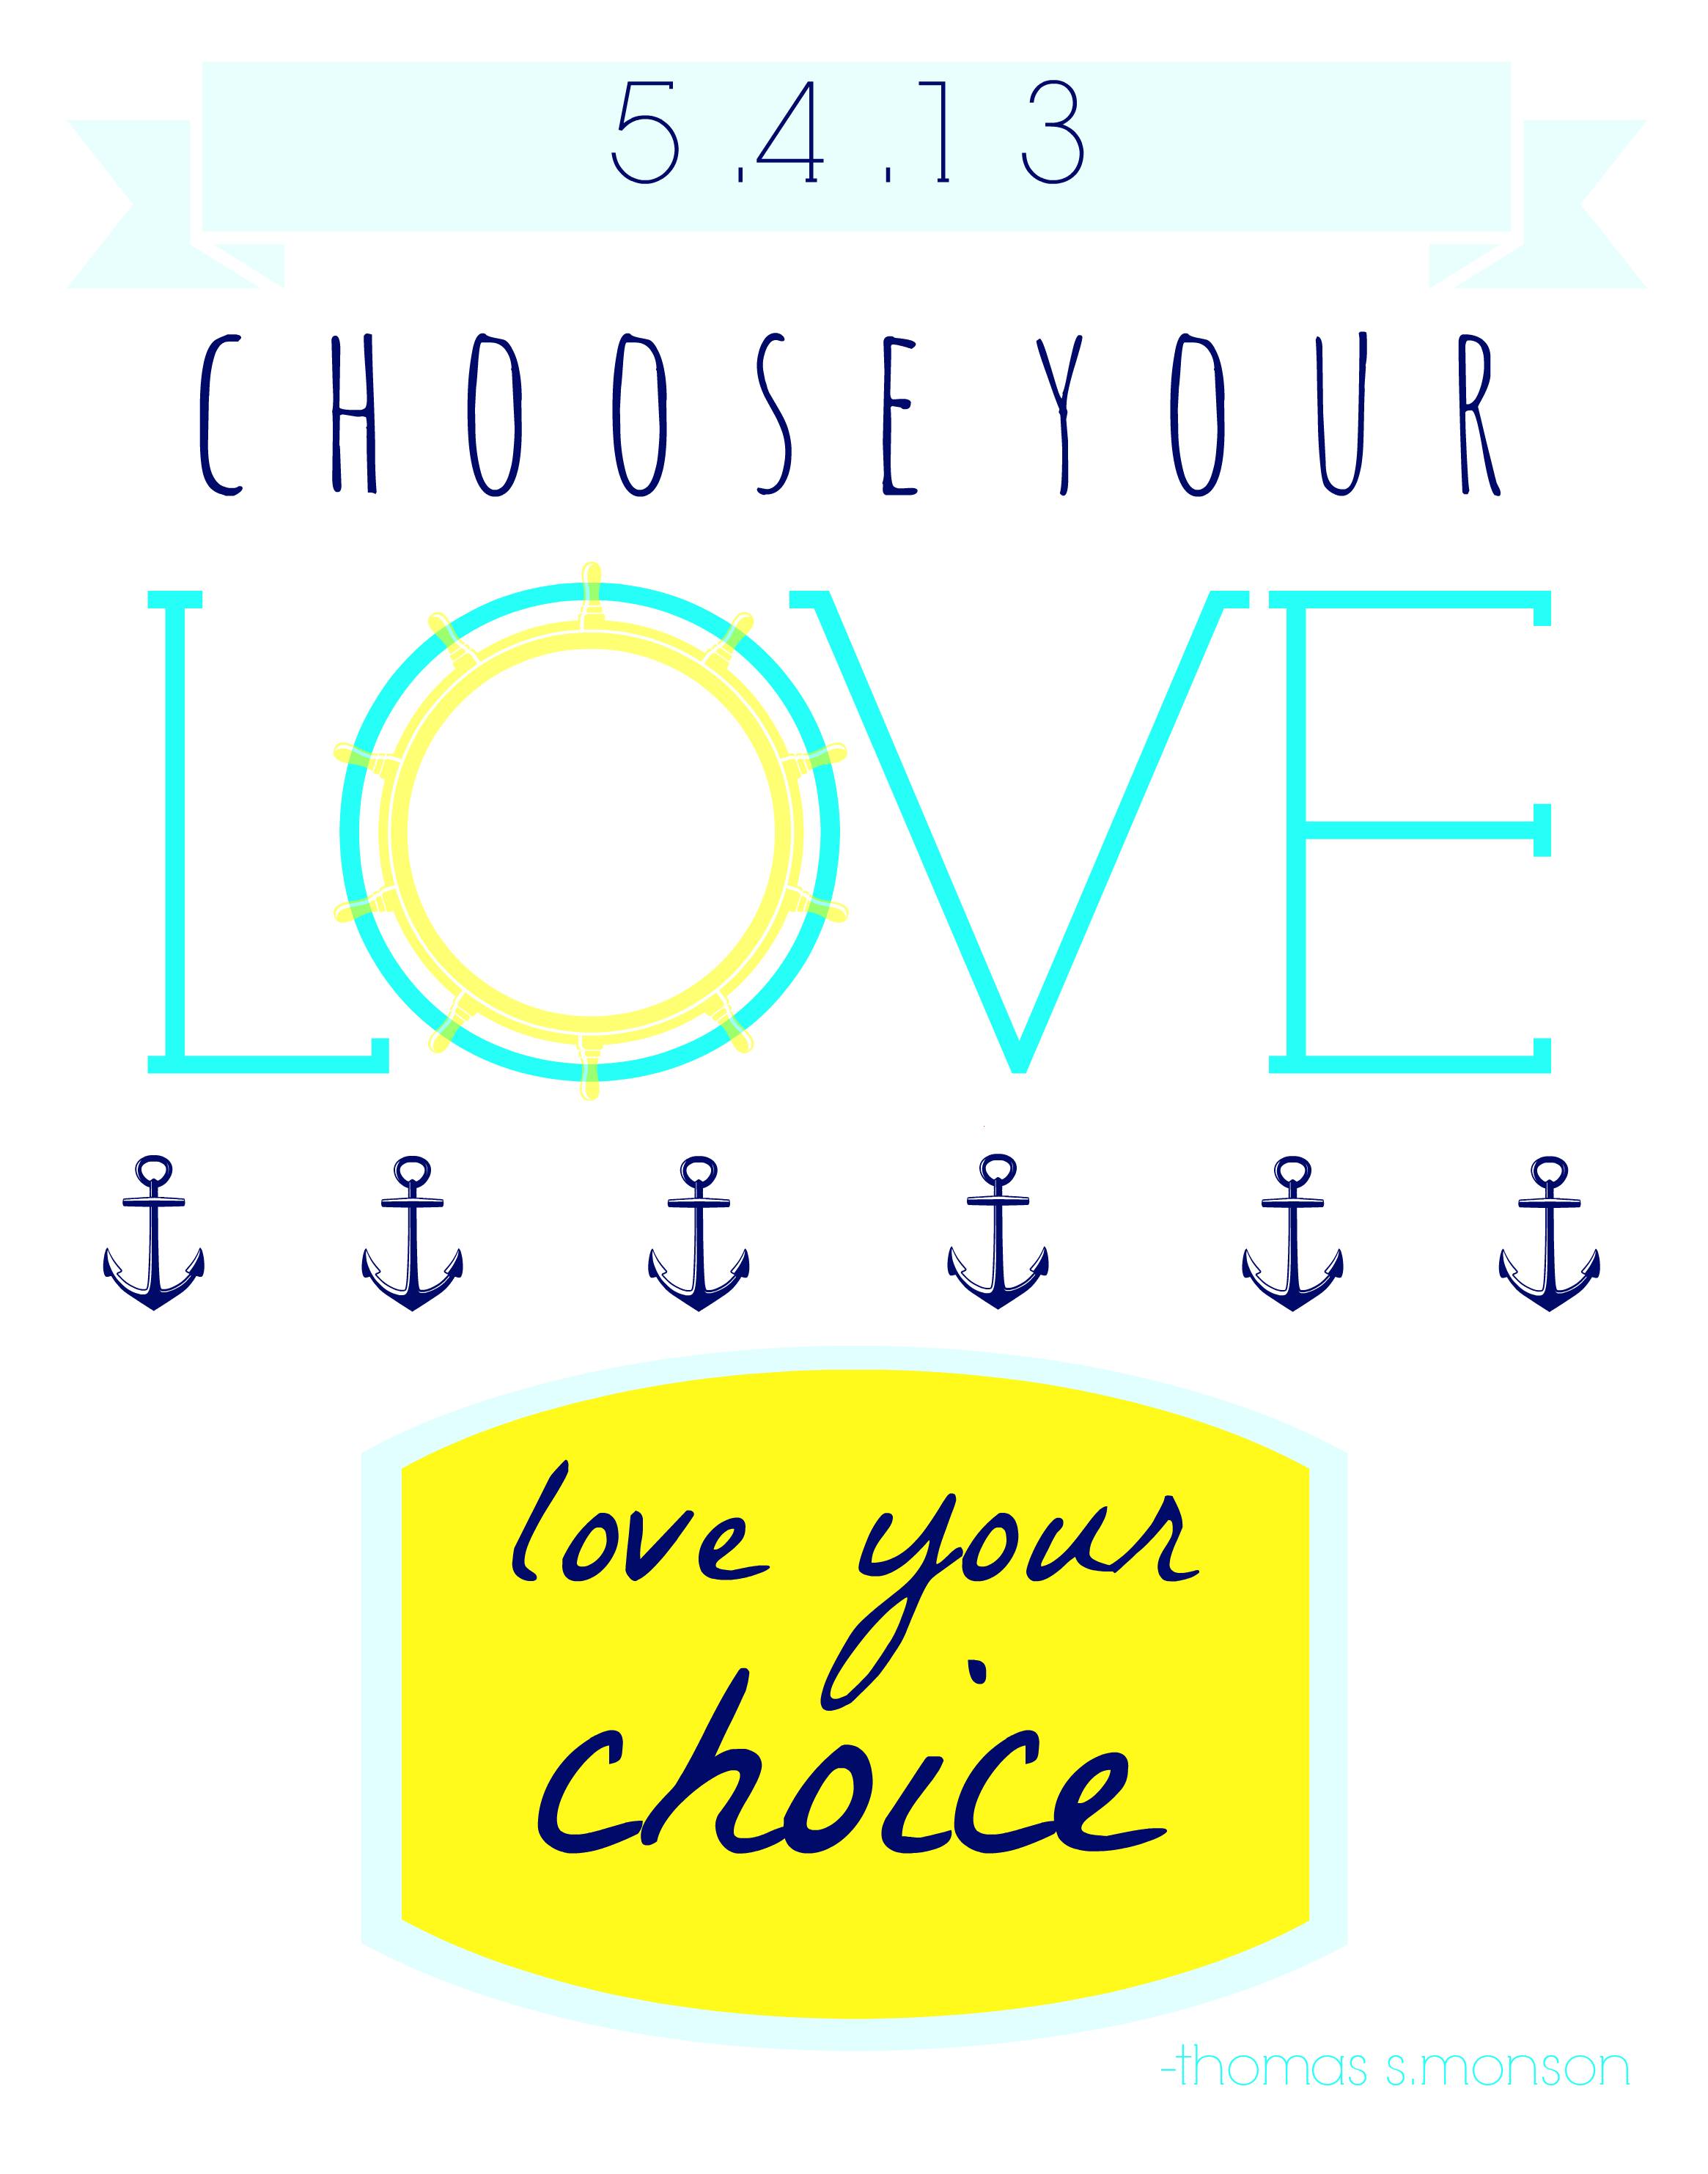 custom made quote art. choose your love. Thomas s. monson. anchor ...